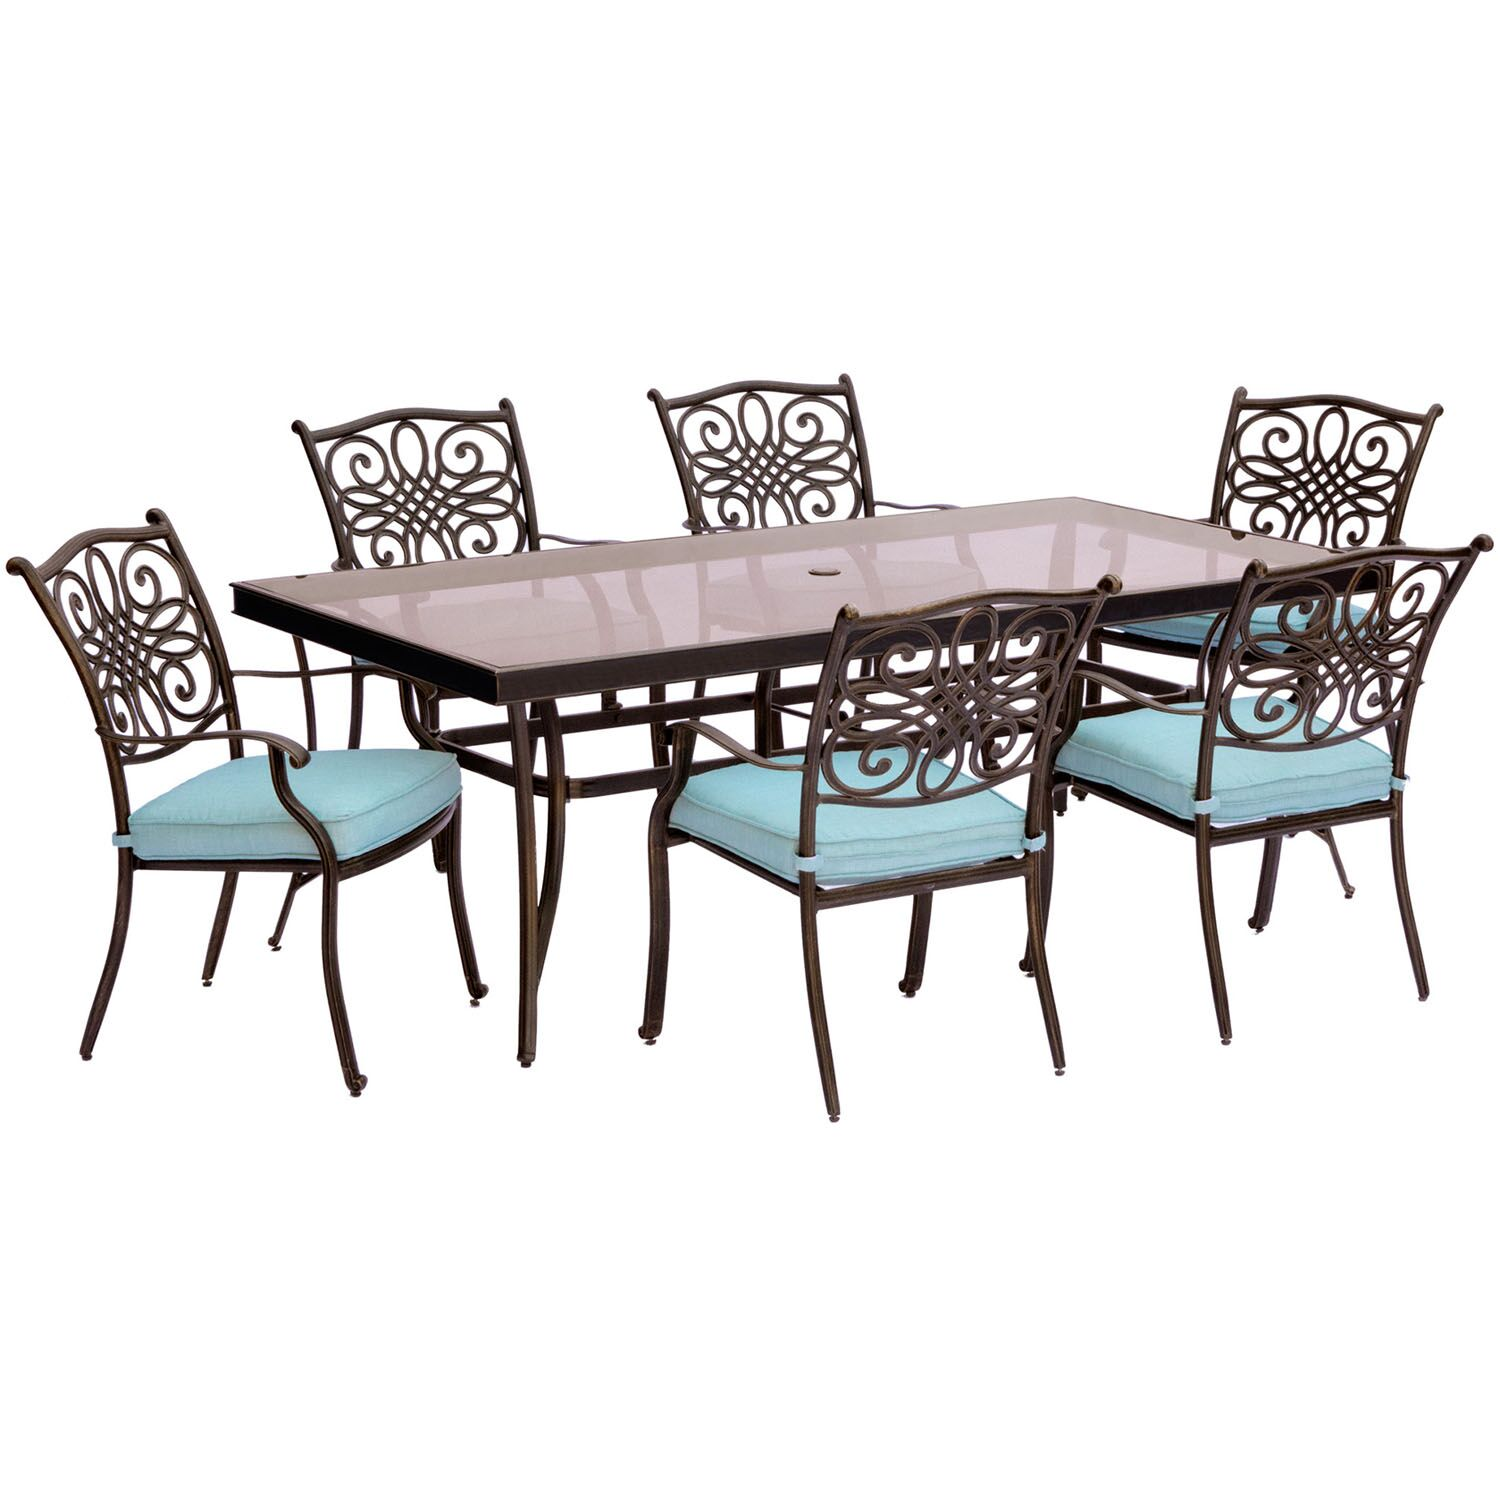 Lauritsen 7 Piece Aluminum Dining Set with Cushions Cushion Color: Blue